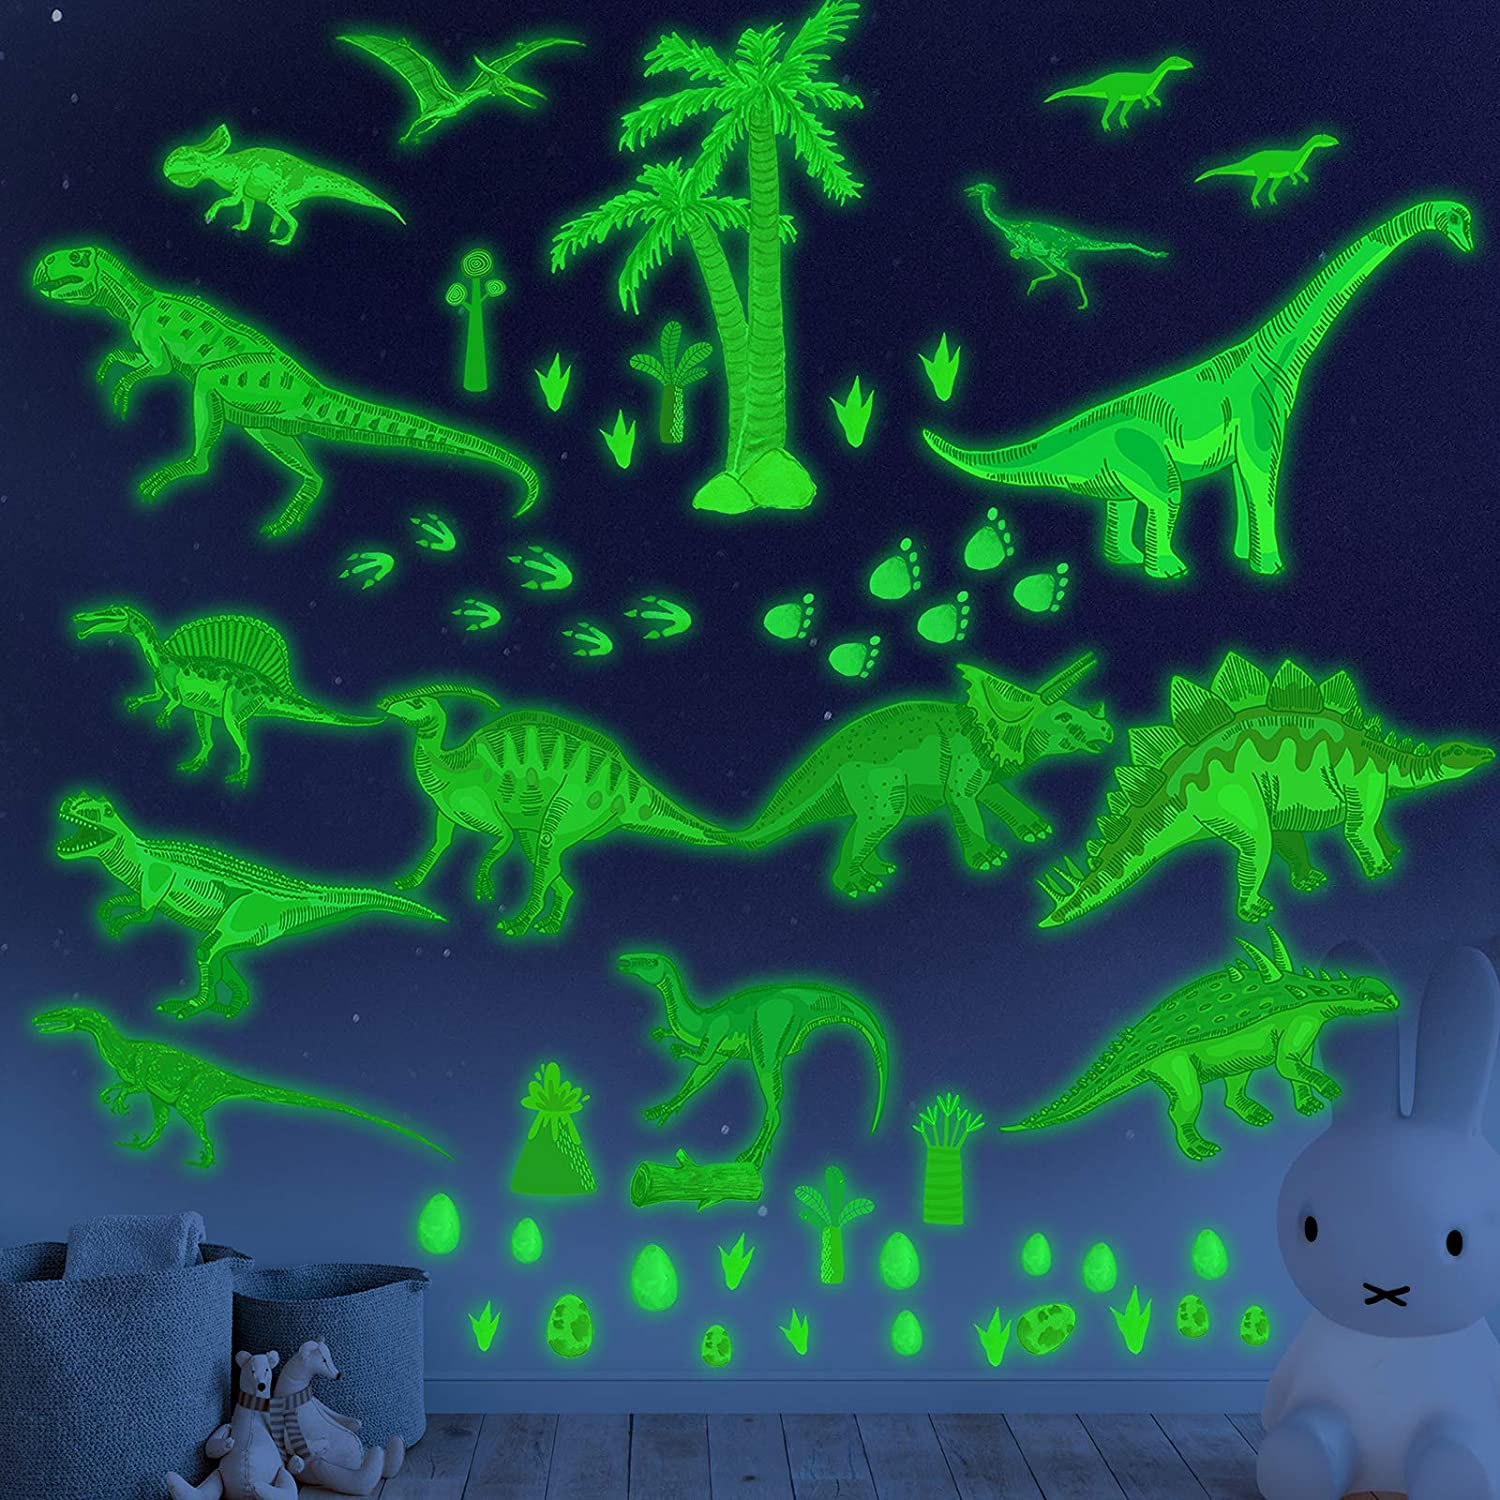 Glow in the Dark Dinosaur Wall Decals stickers for kids Bedroom,Dinosaur Wall Decals for Boys Room,Large Dinosaur Wall Decor Decorations for Nursery, Living Room,Classroom,Kids Birthday Christmas Gift